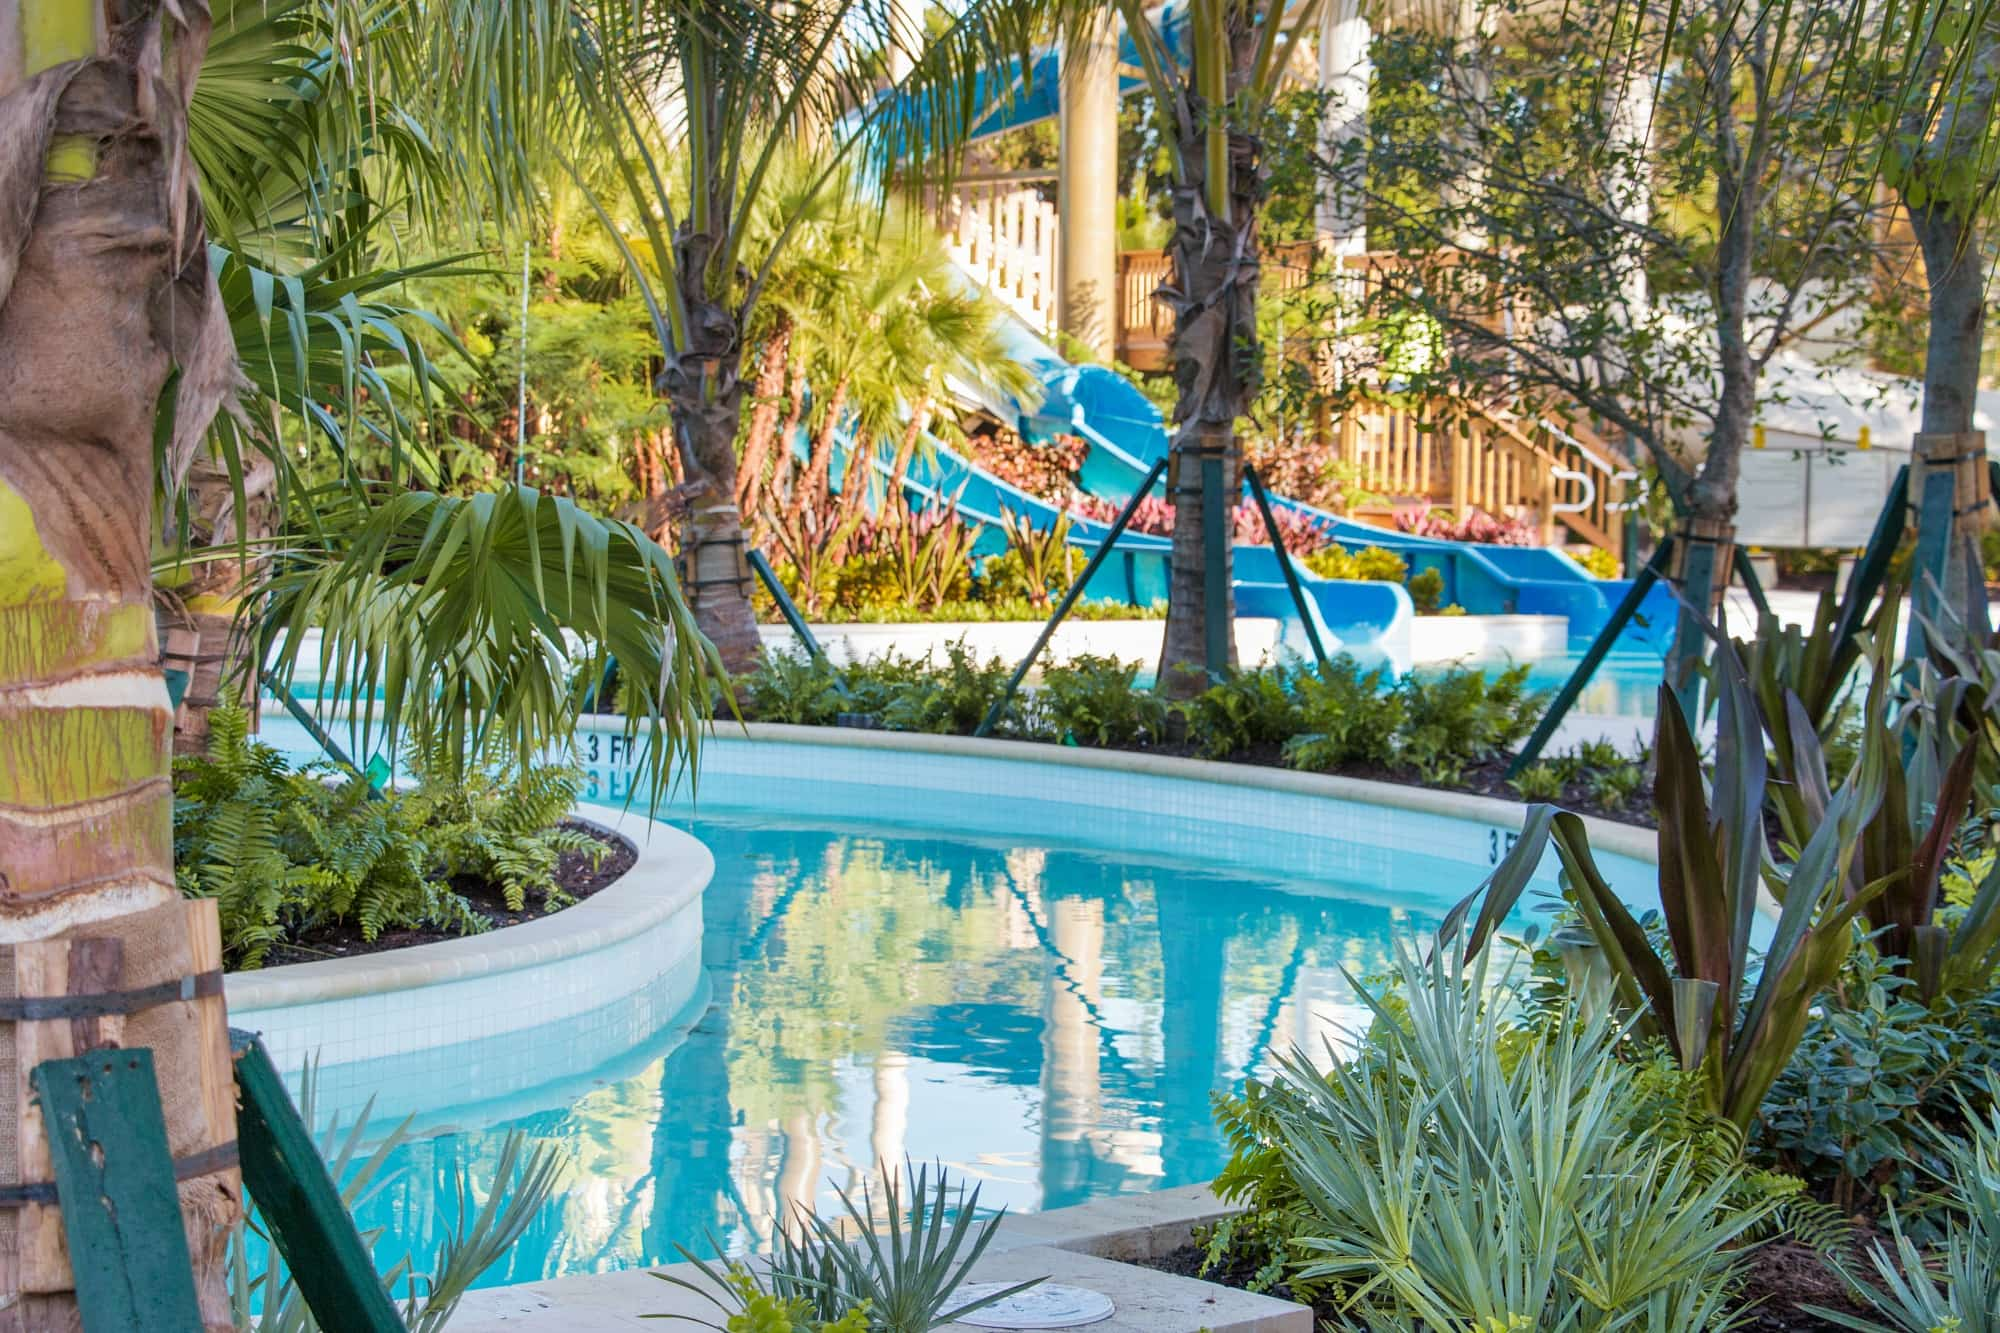 Hyatt Regency Coconut Point's lazy river ~ Best Hotels with Lazy Rivers